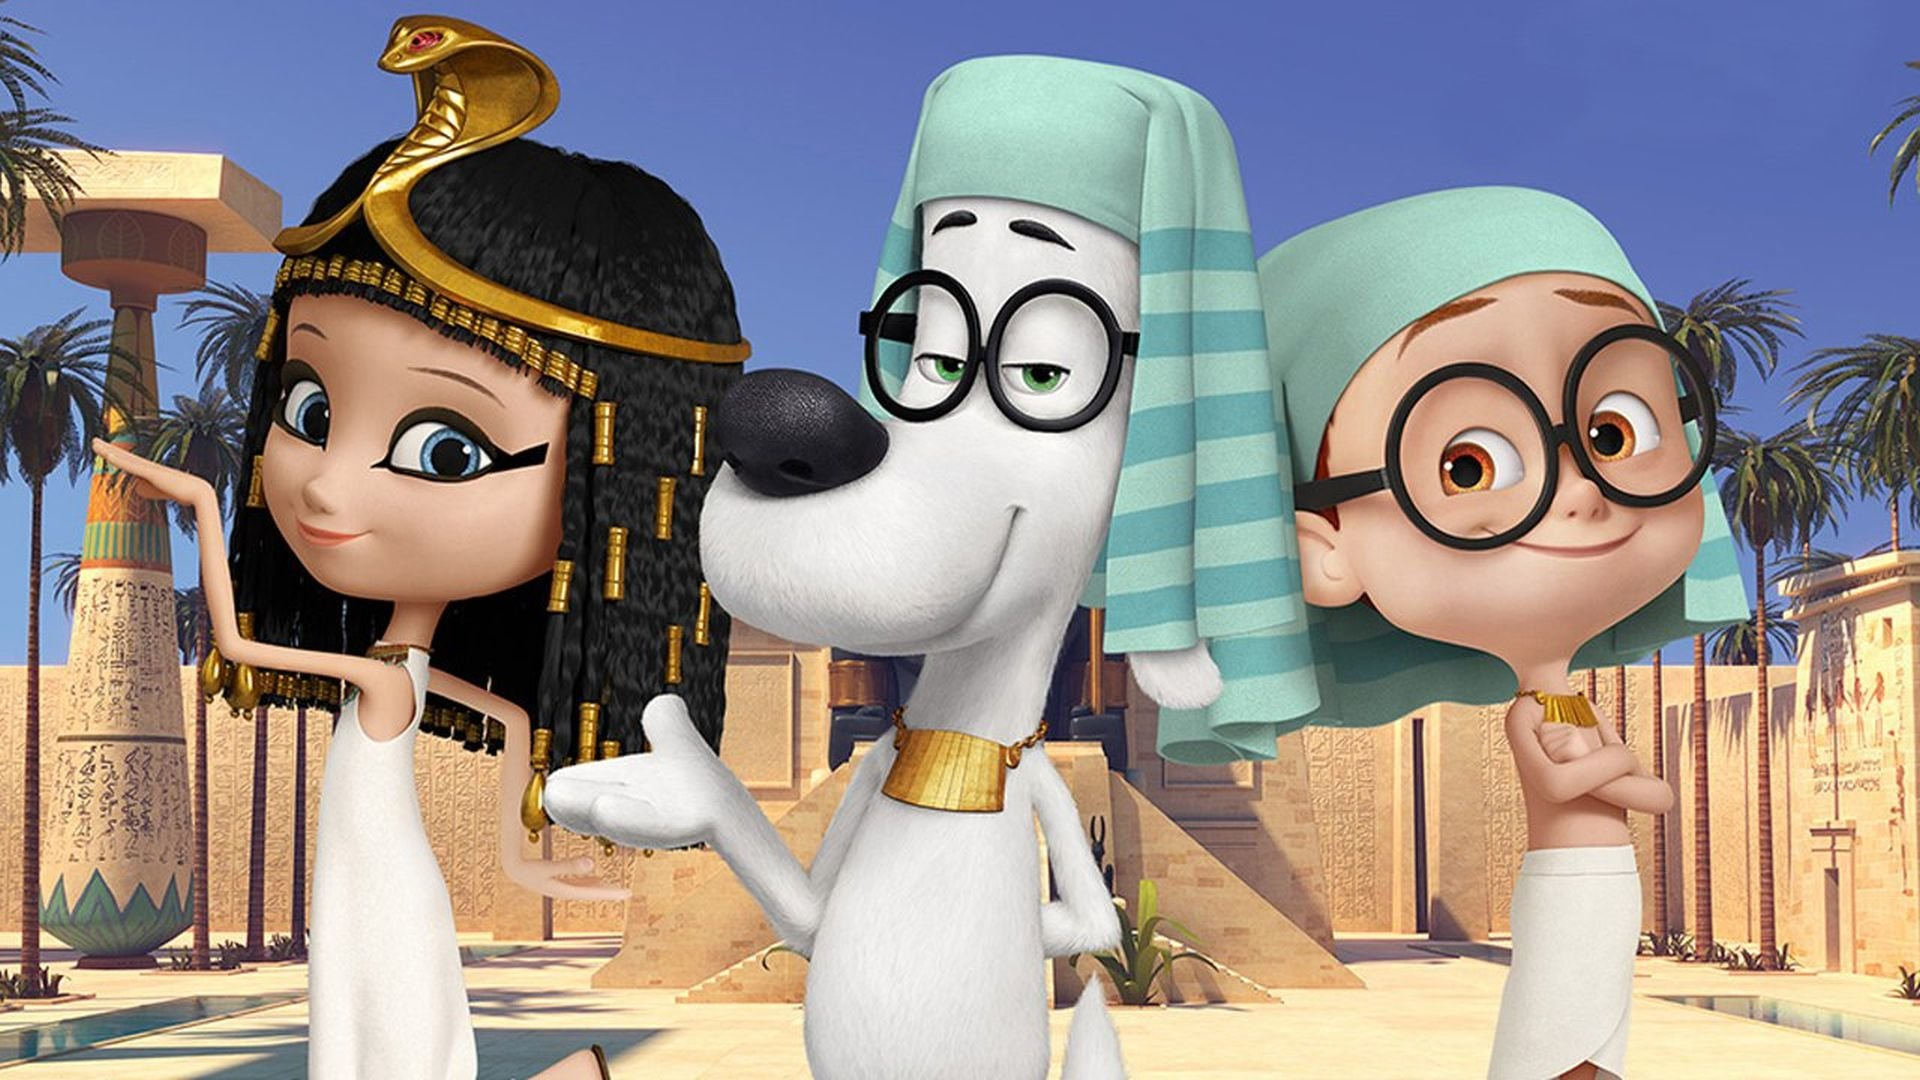 mr peabody and sherman 2 full movie download in hindi hd